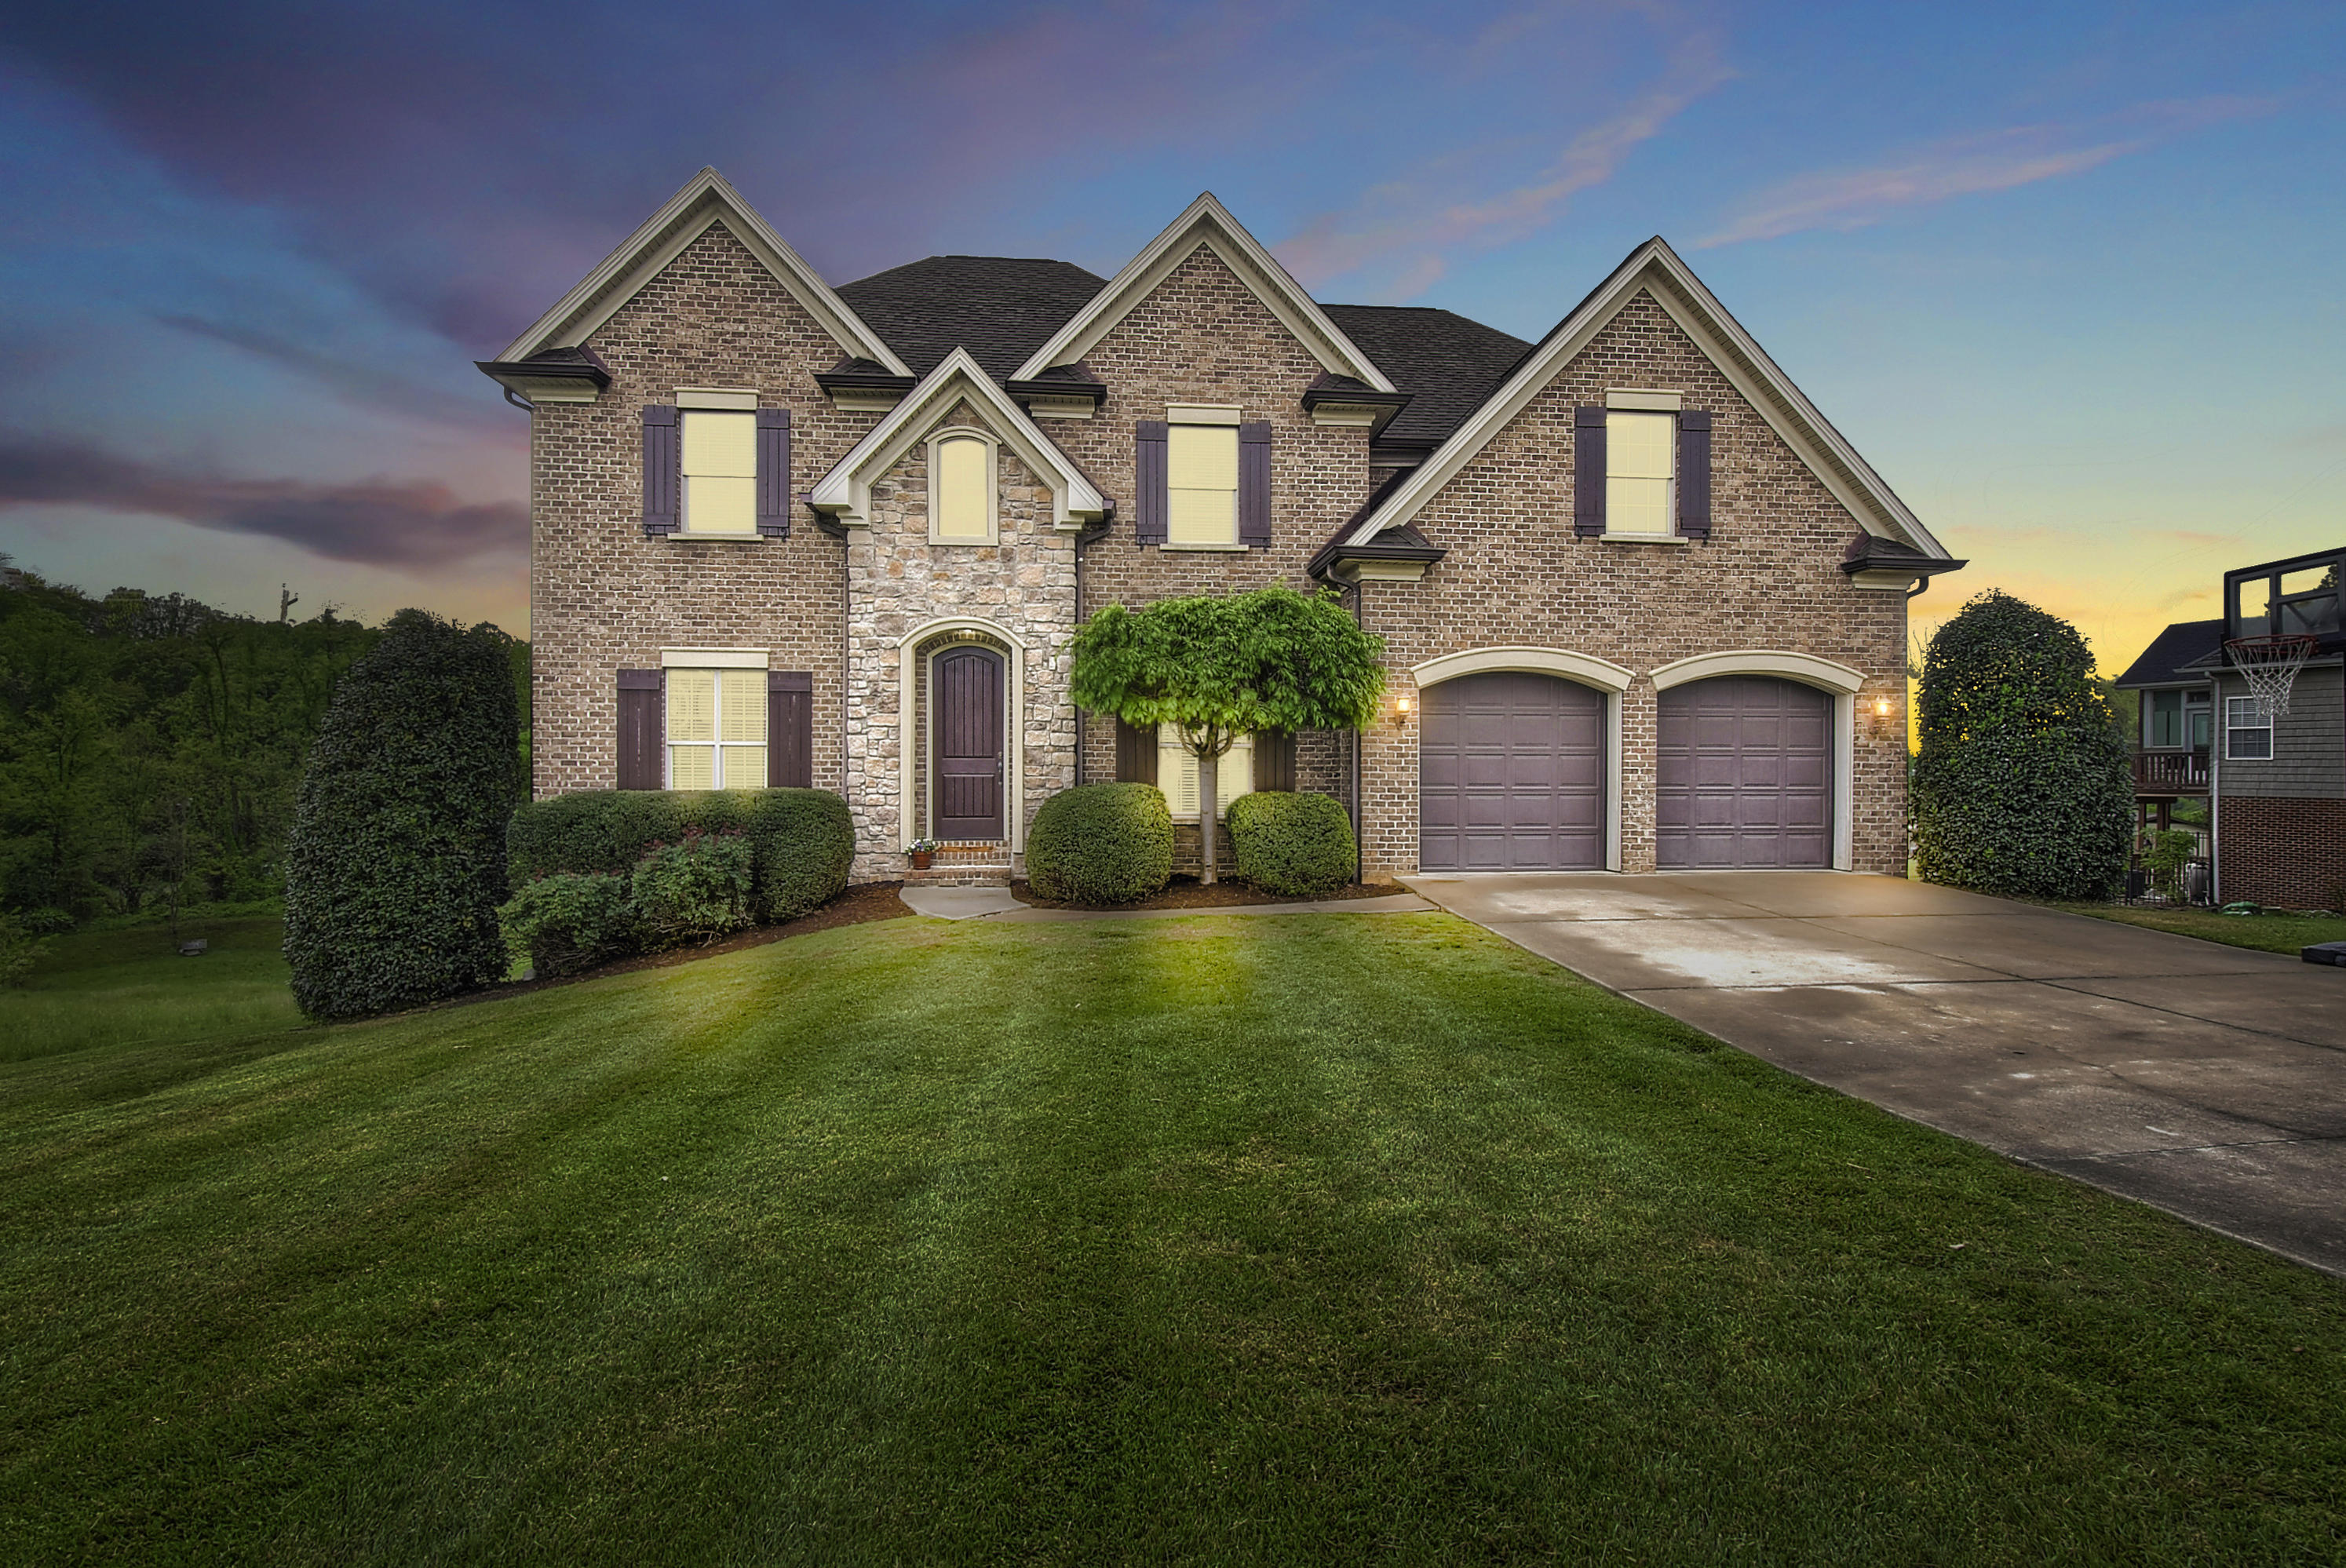 144 Sunset Meadows Court, Gray, Tennessee 37615, 5 Bedrooms Bedrooms, ,3 BathroomsBathrooms,Single Family,For Sale,144 Sunset Meadows Court,2,9921996